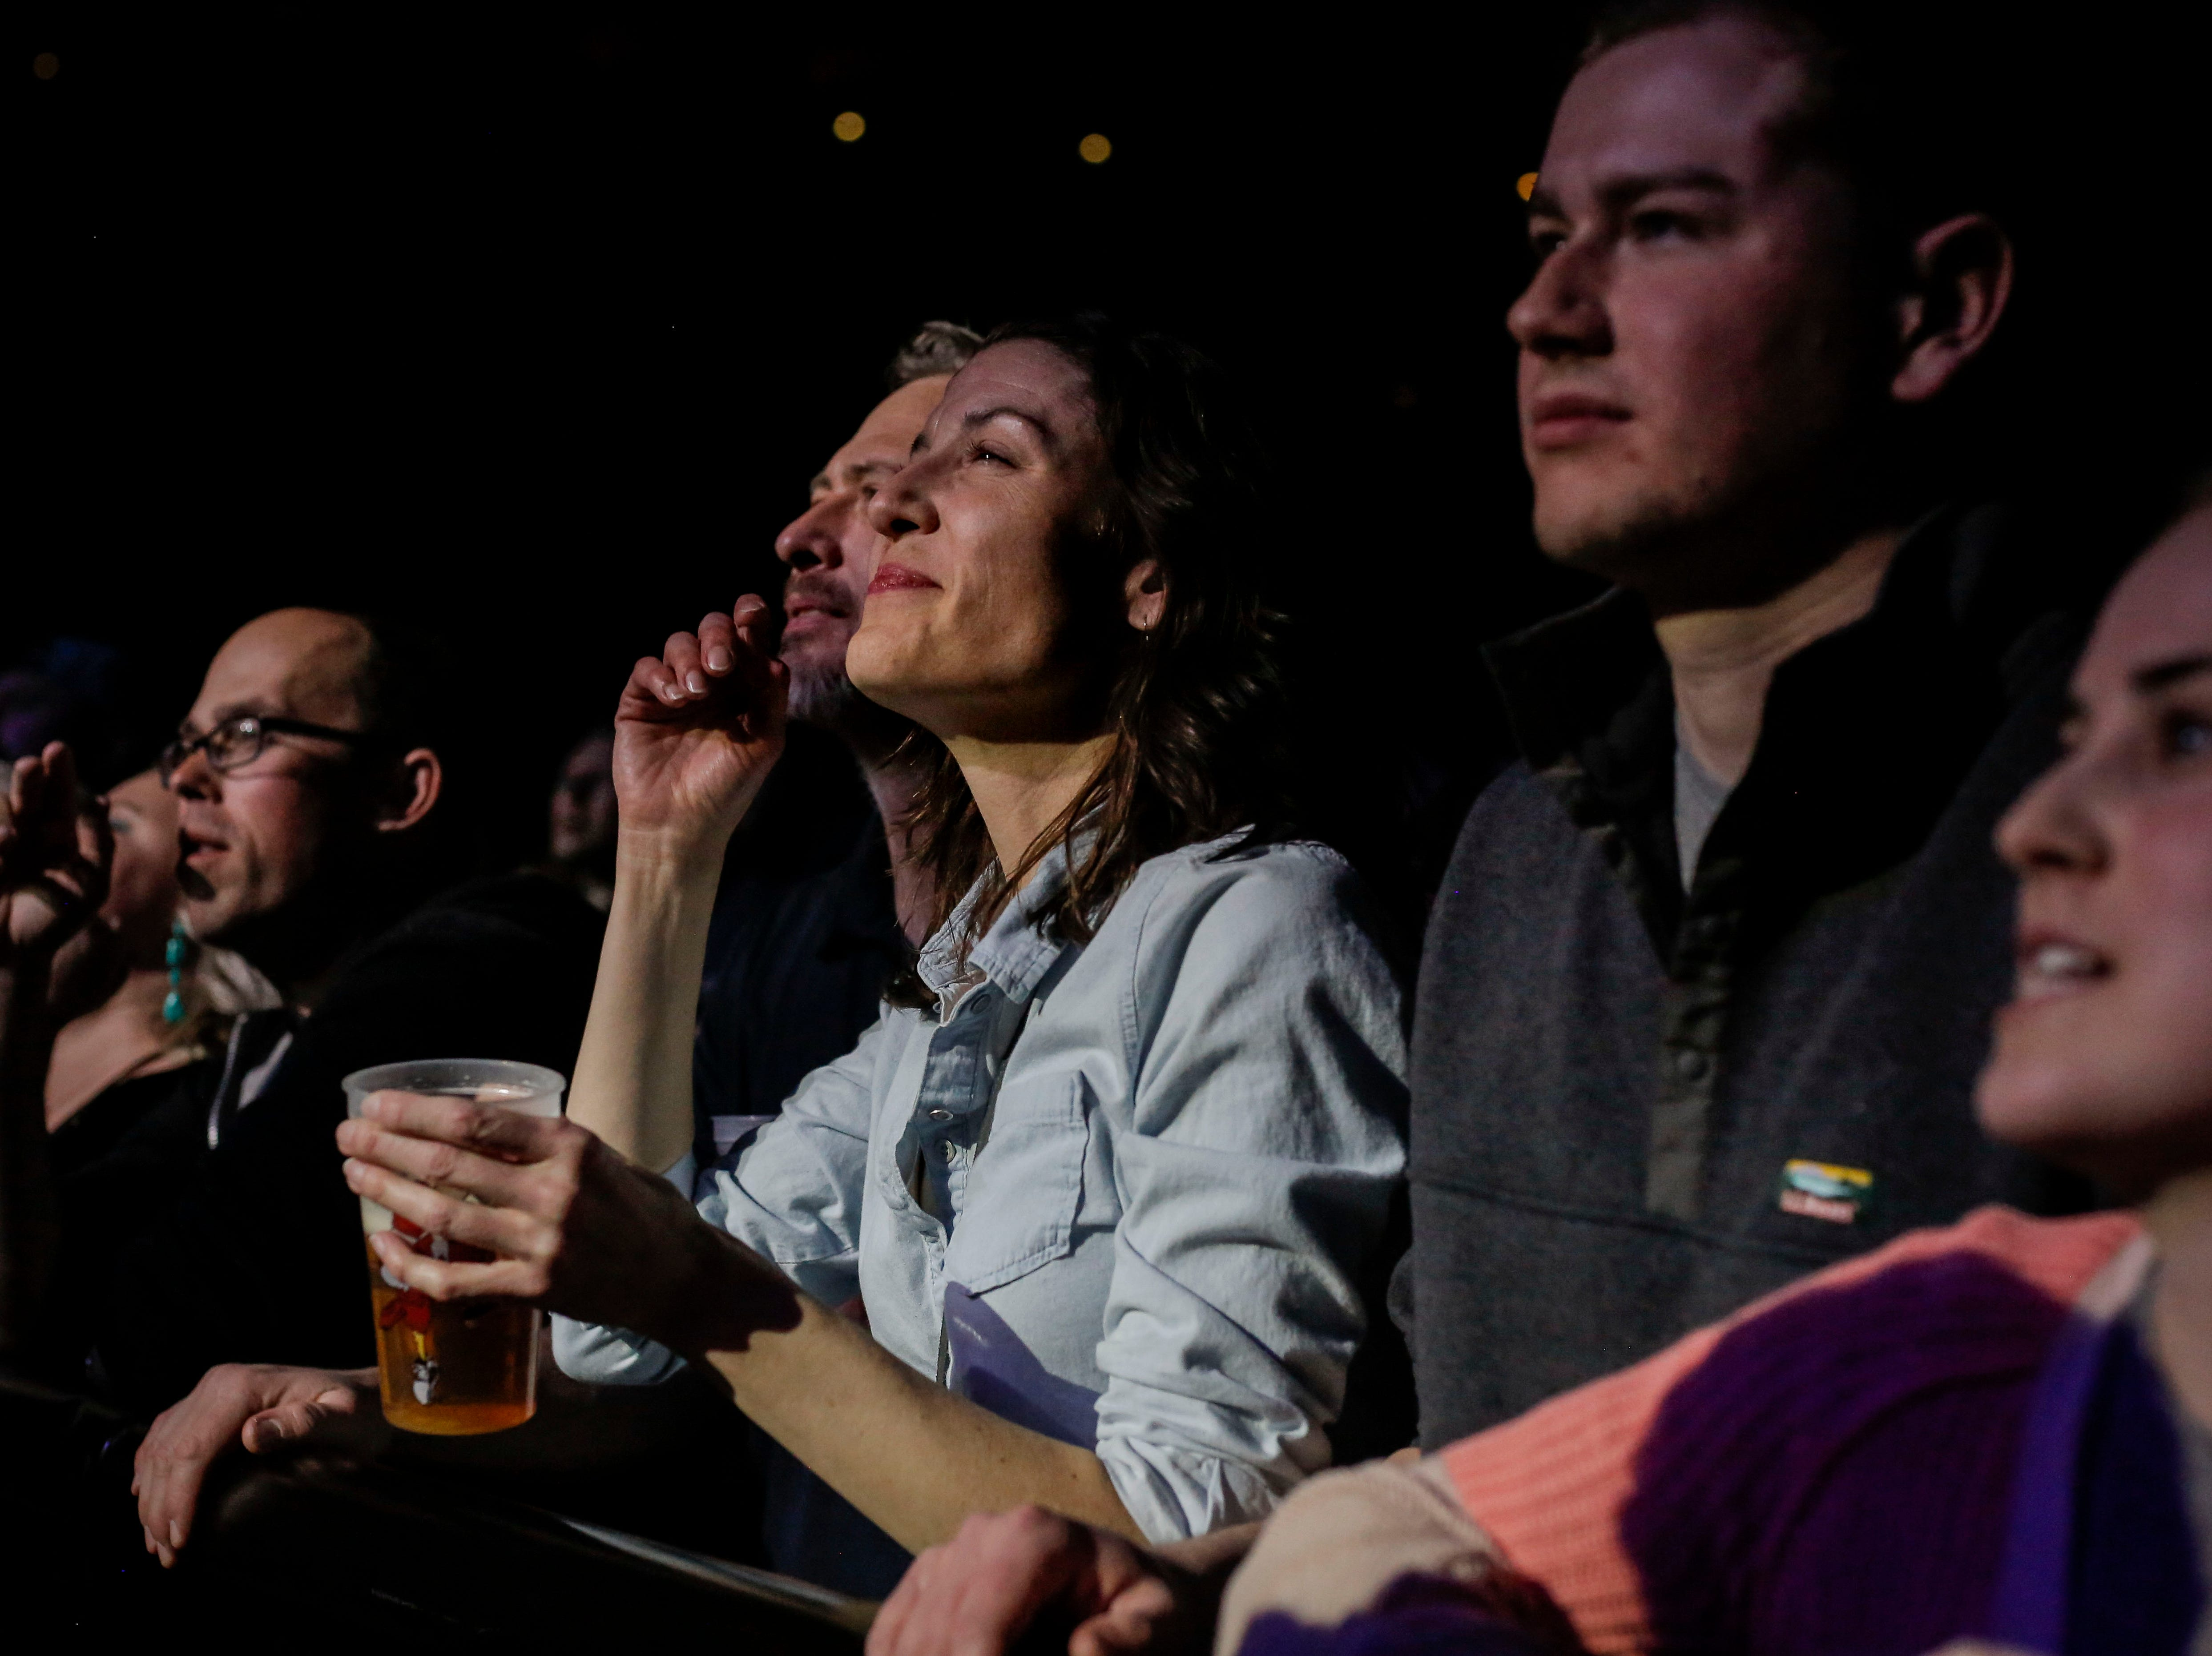 Fans listen to Weezer perform during the first show of the Weezer x Pixies 2019 tour at the KFC Yum! Center in downtown Louisville, Ky. on Friday, March 8, 2019.